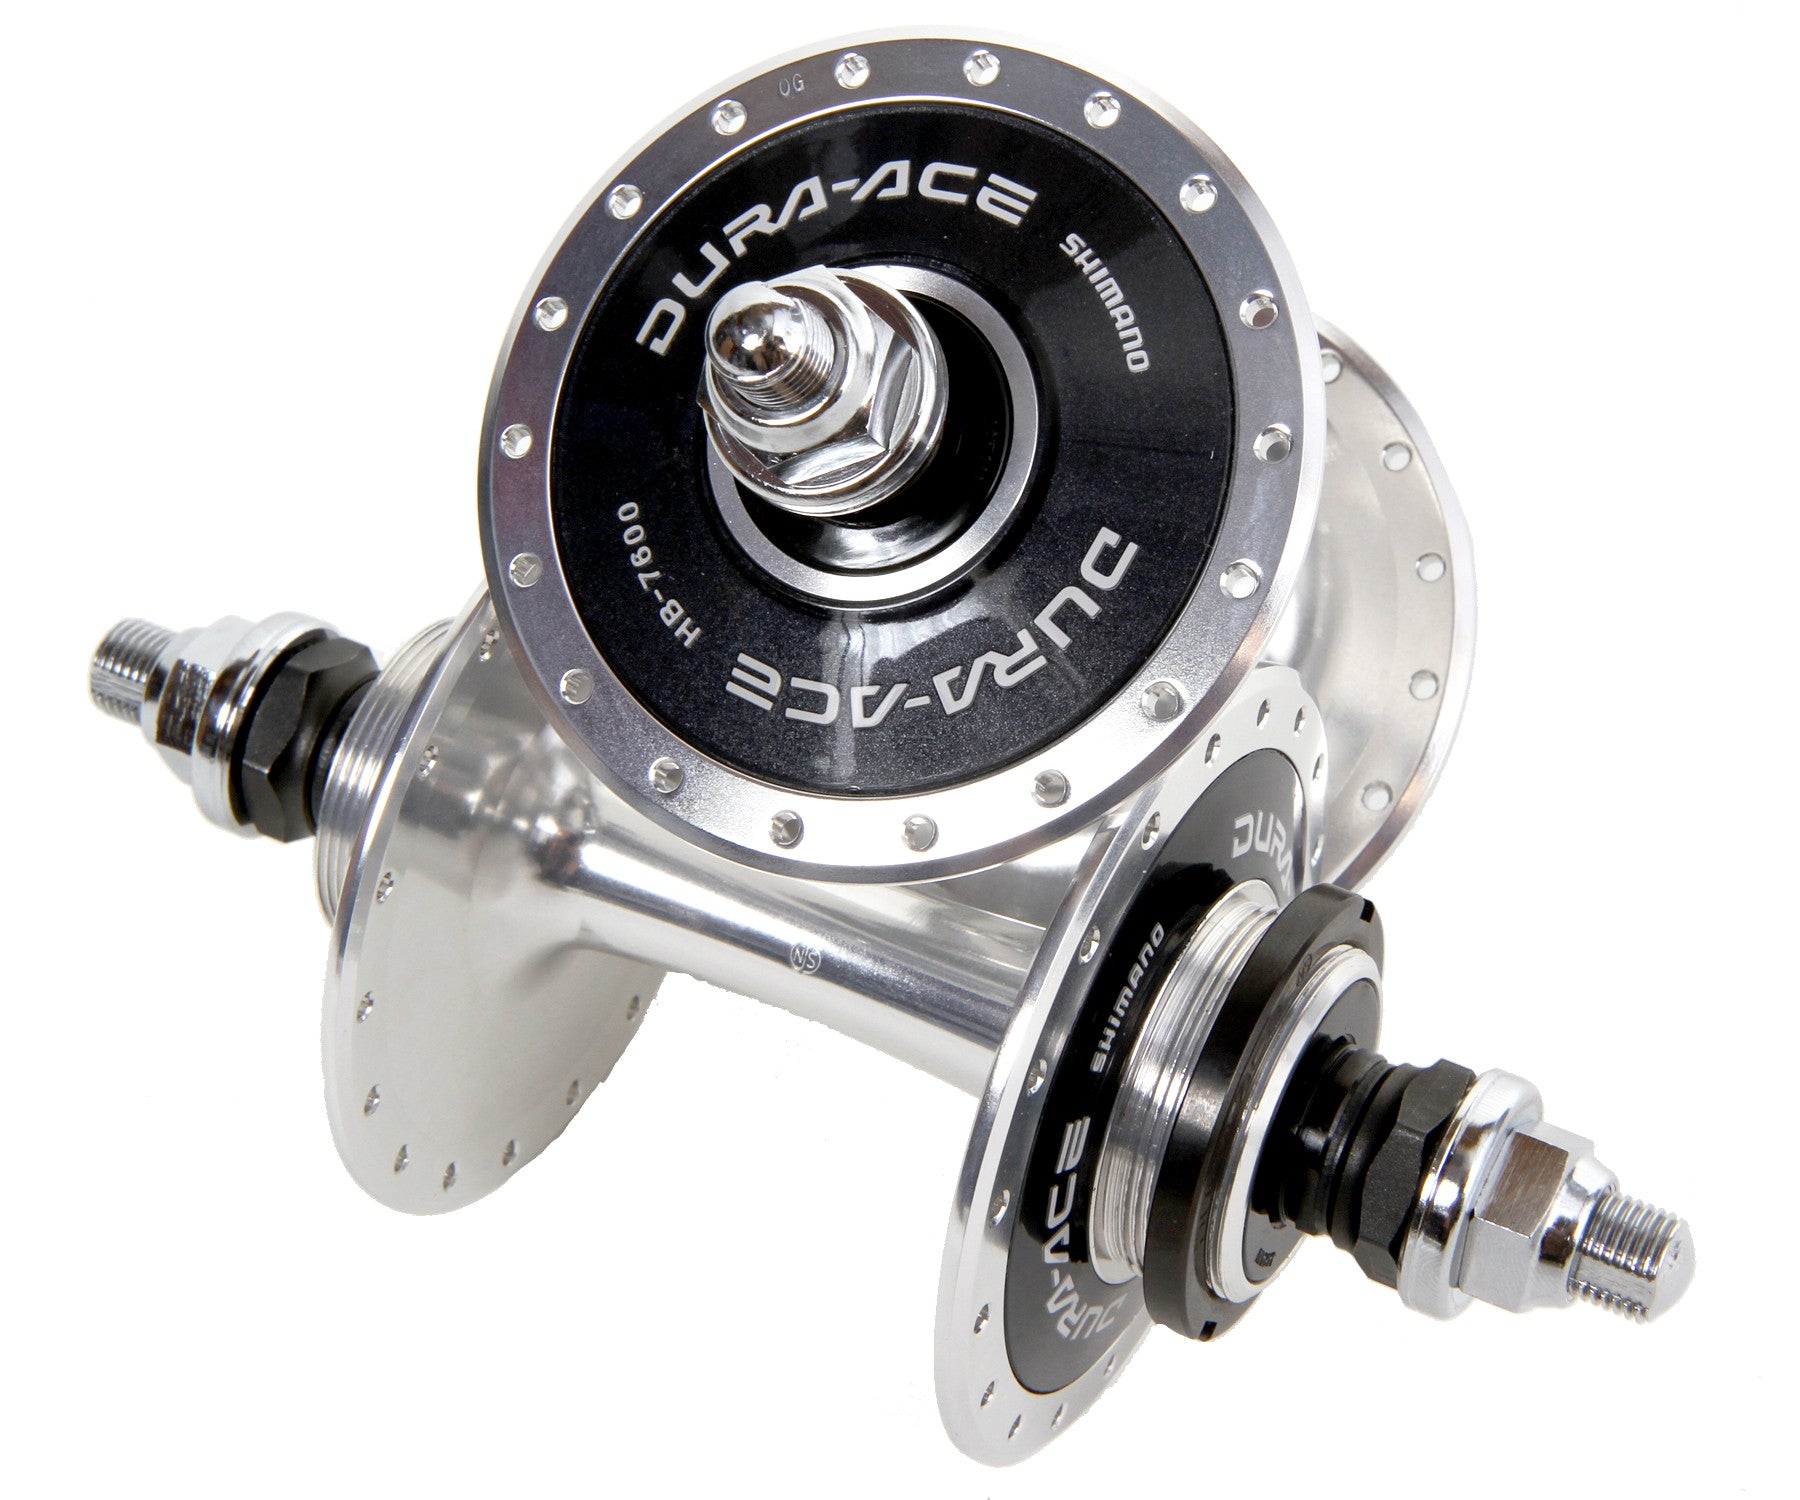 Shimano Dura Ace 7600 NJS 36h hub set - Retrogression